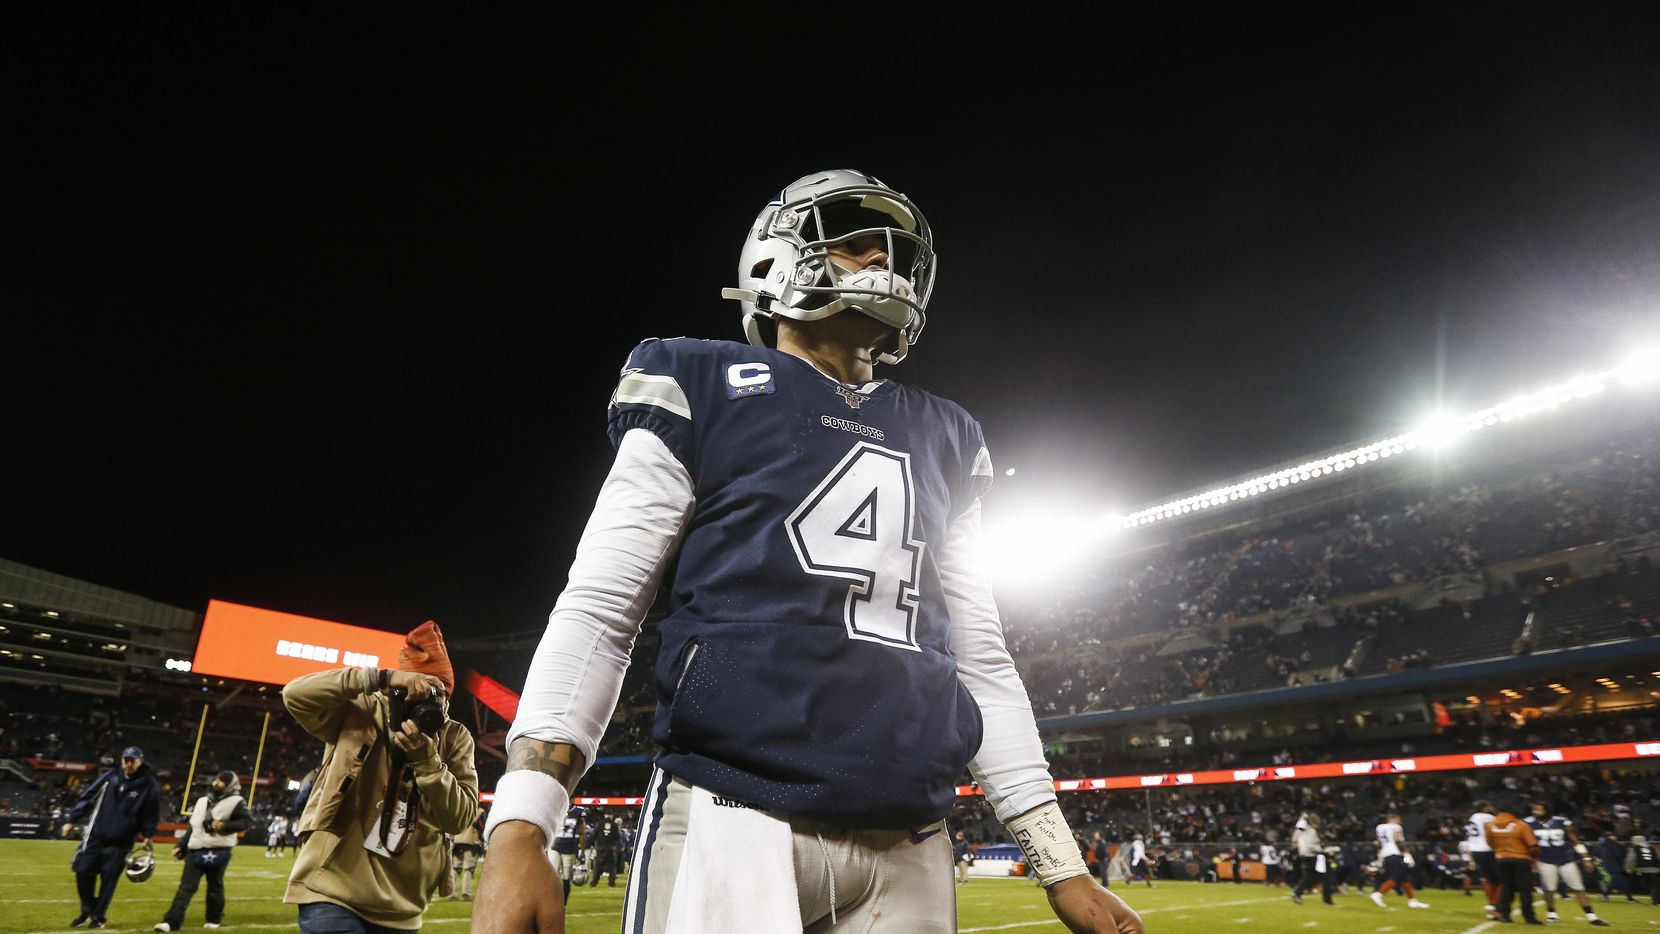 Dallas Cowboys quarterback Dak Prescott (4) exits the field following the Dallas Cowboys 31-24 loss to the Chicago Bears on Thursday, Dec. 5, 2019, at Soldier Field in Chicago.